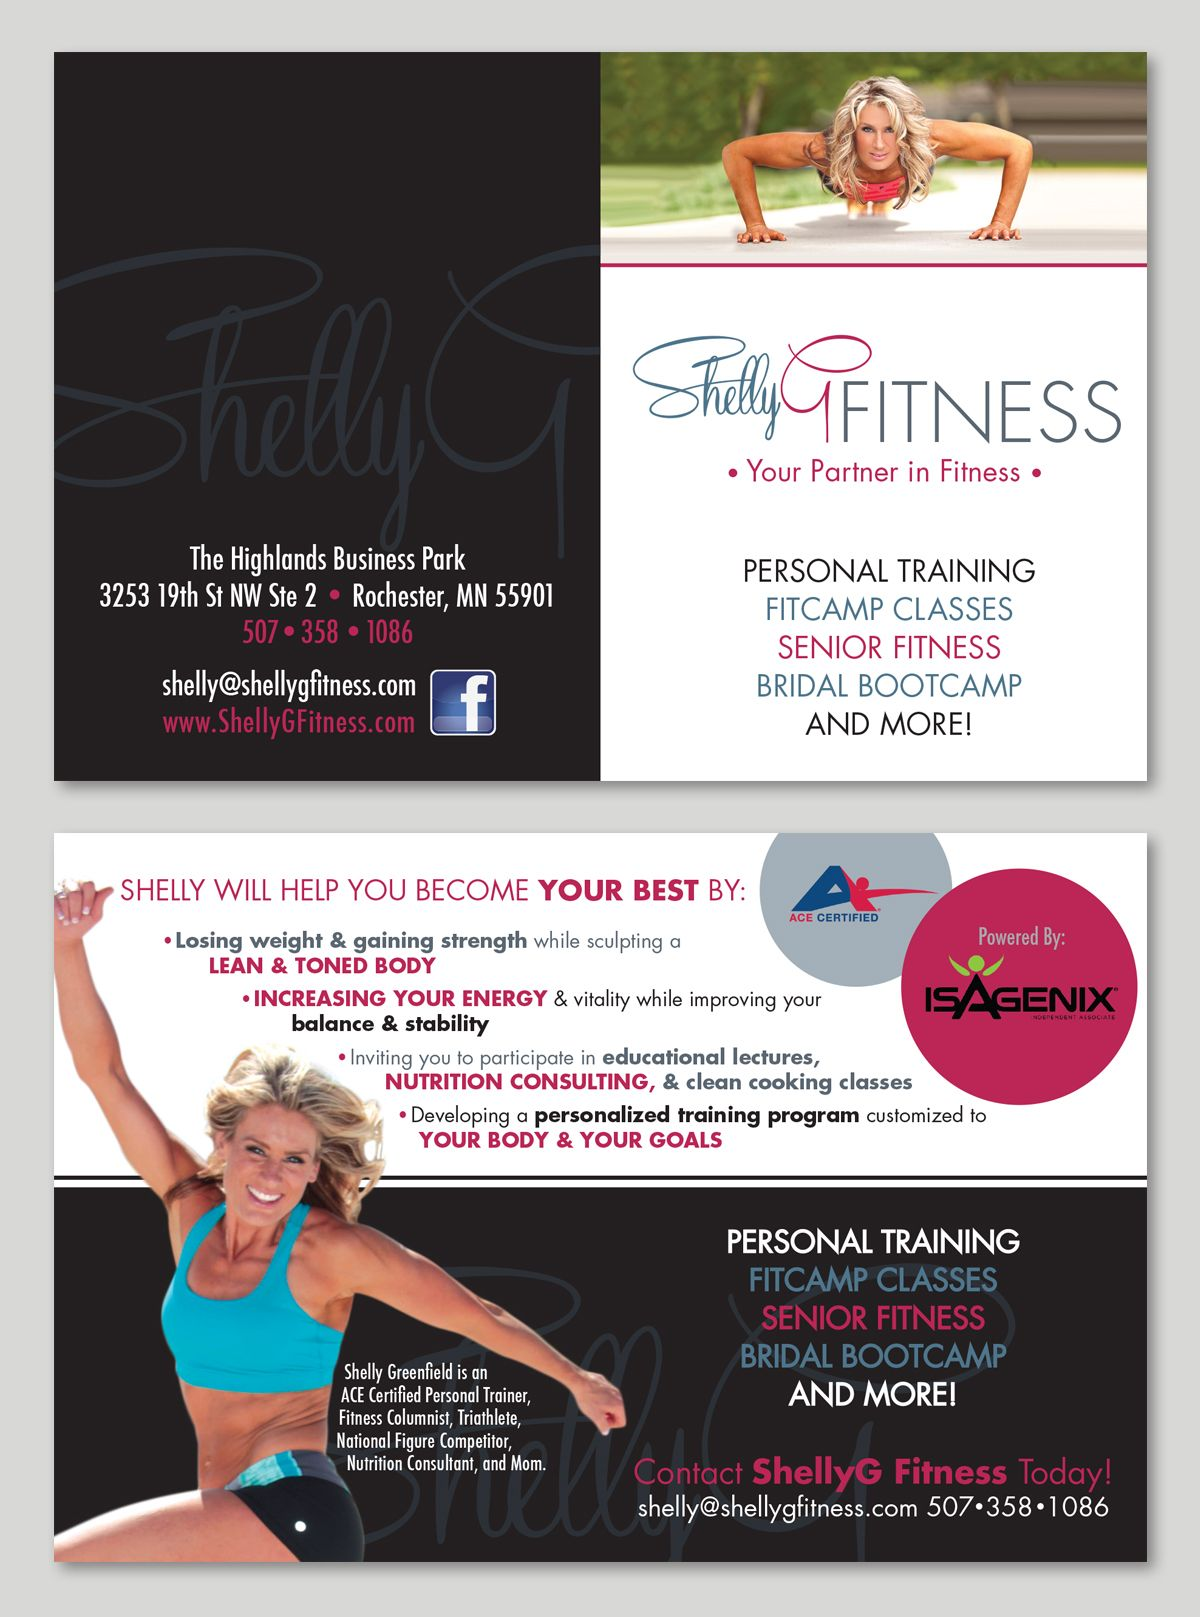 Shellyg fitness logo line card copyright tulip tree studios explore fitness logo tulip and more 1betcityfo Image collections